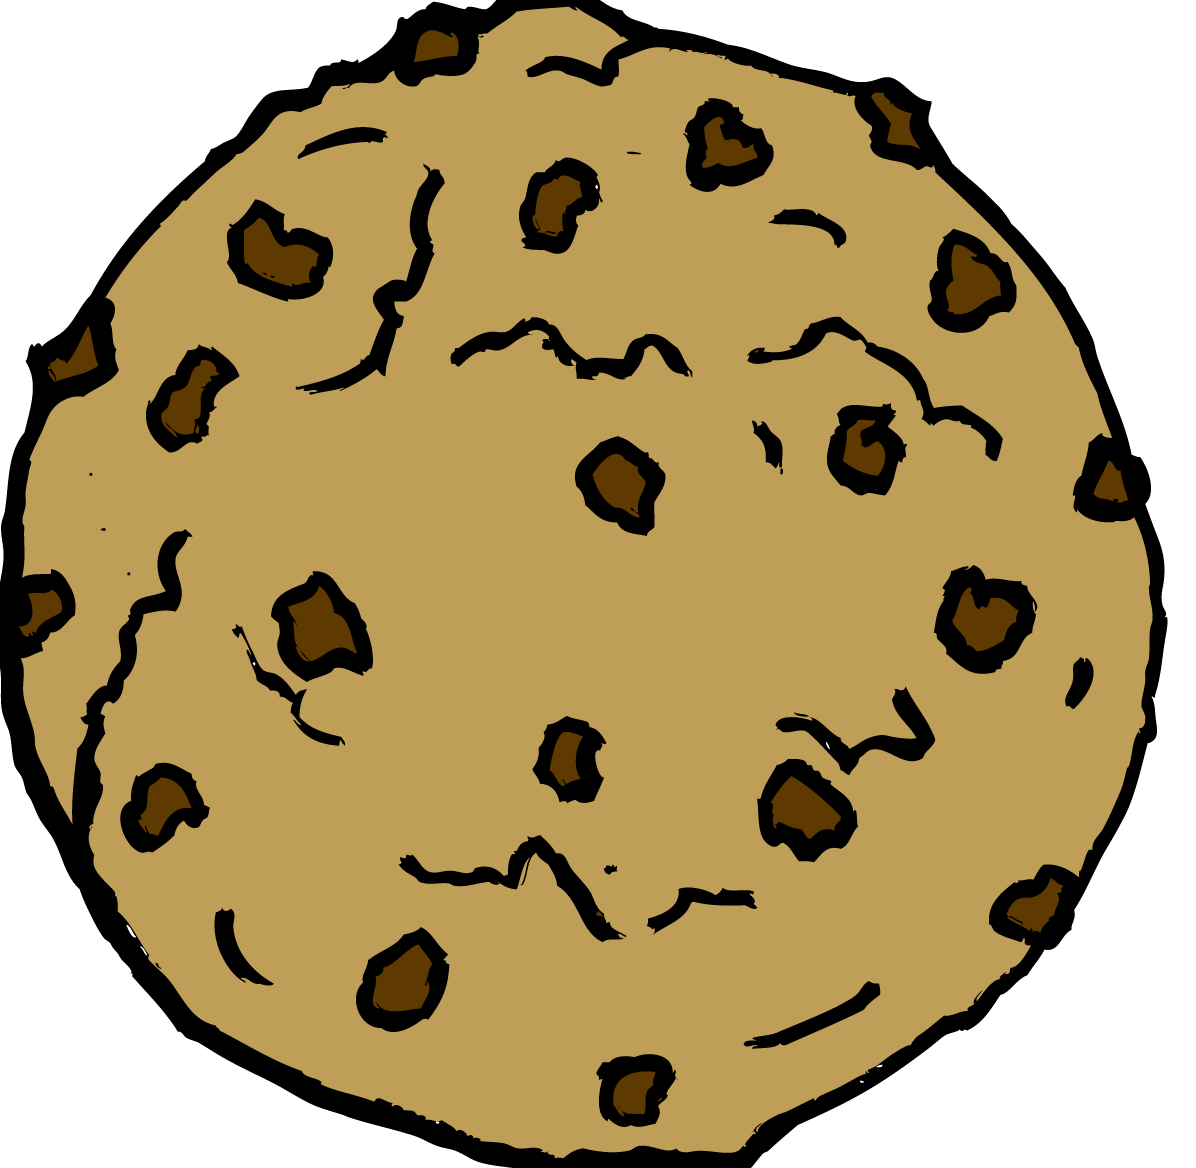 Chocolate Chip Cookie Clipart #15858